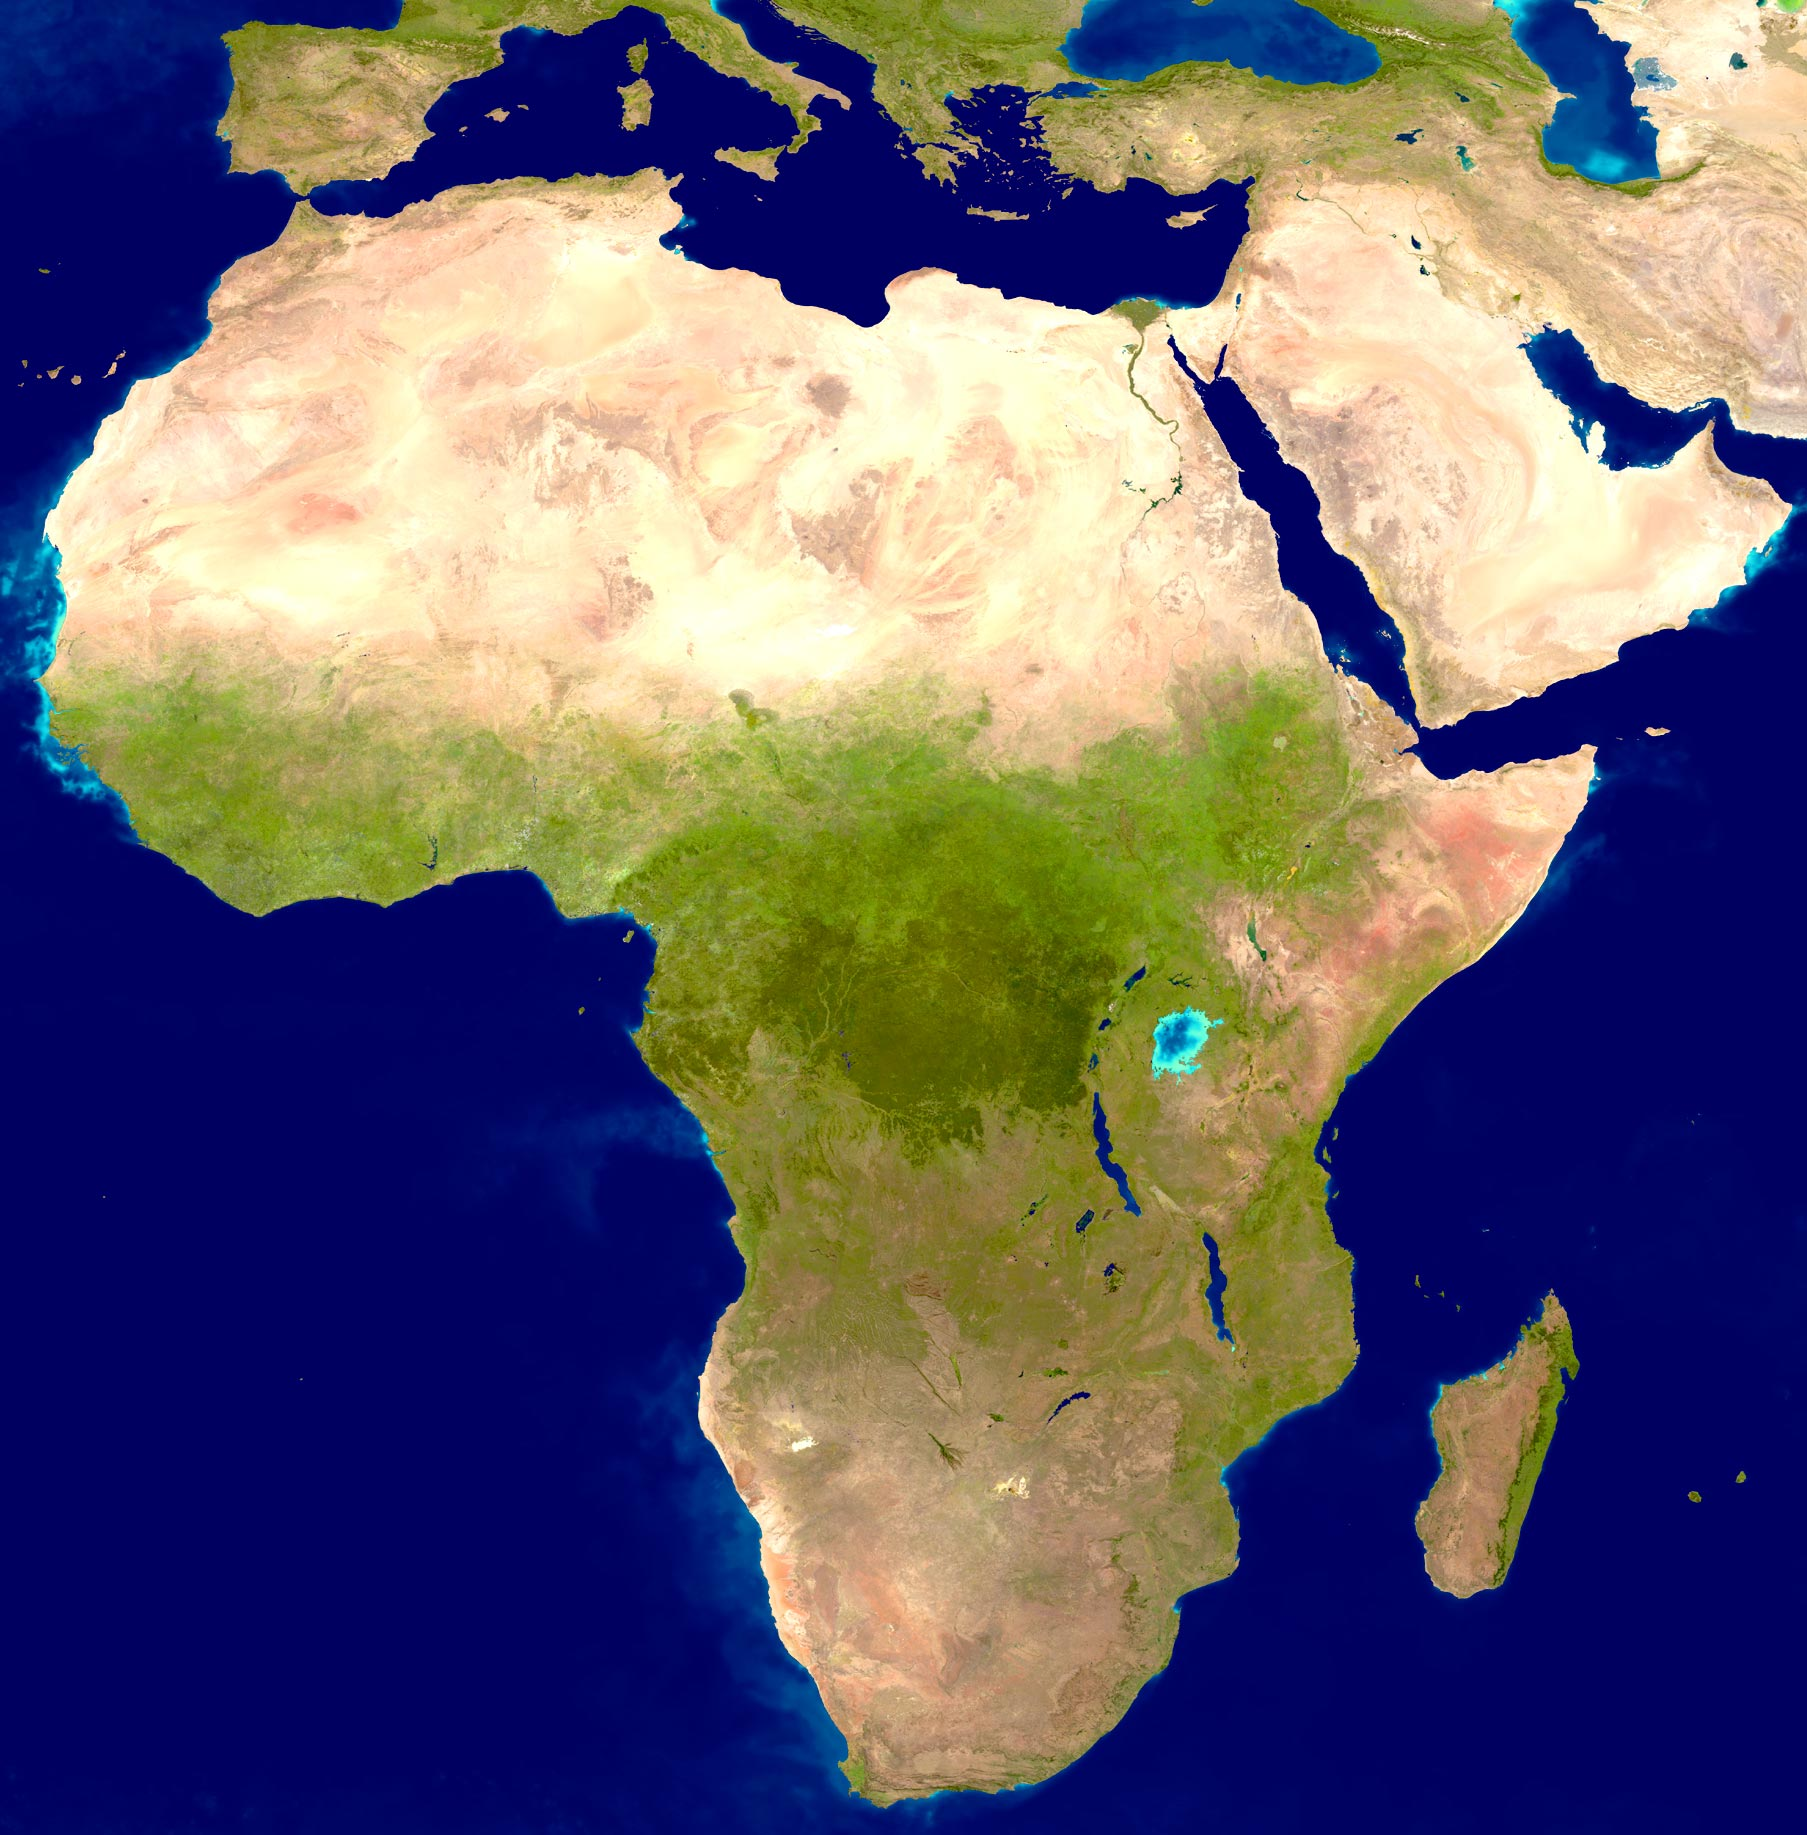 Africa Image Sahara Desert And Forests - Africa desert map